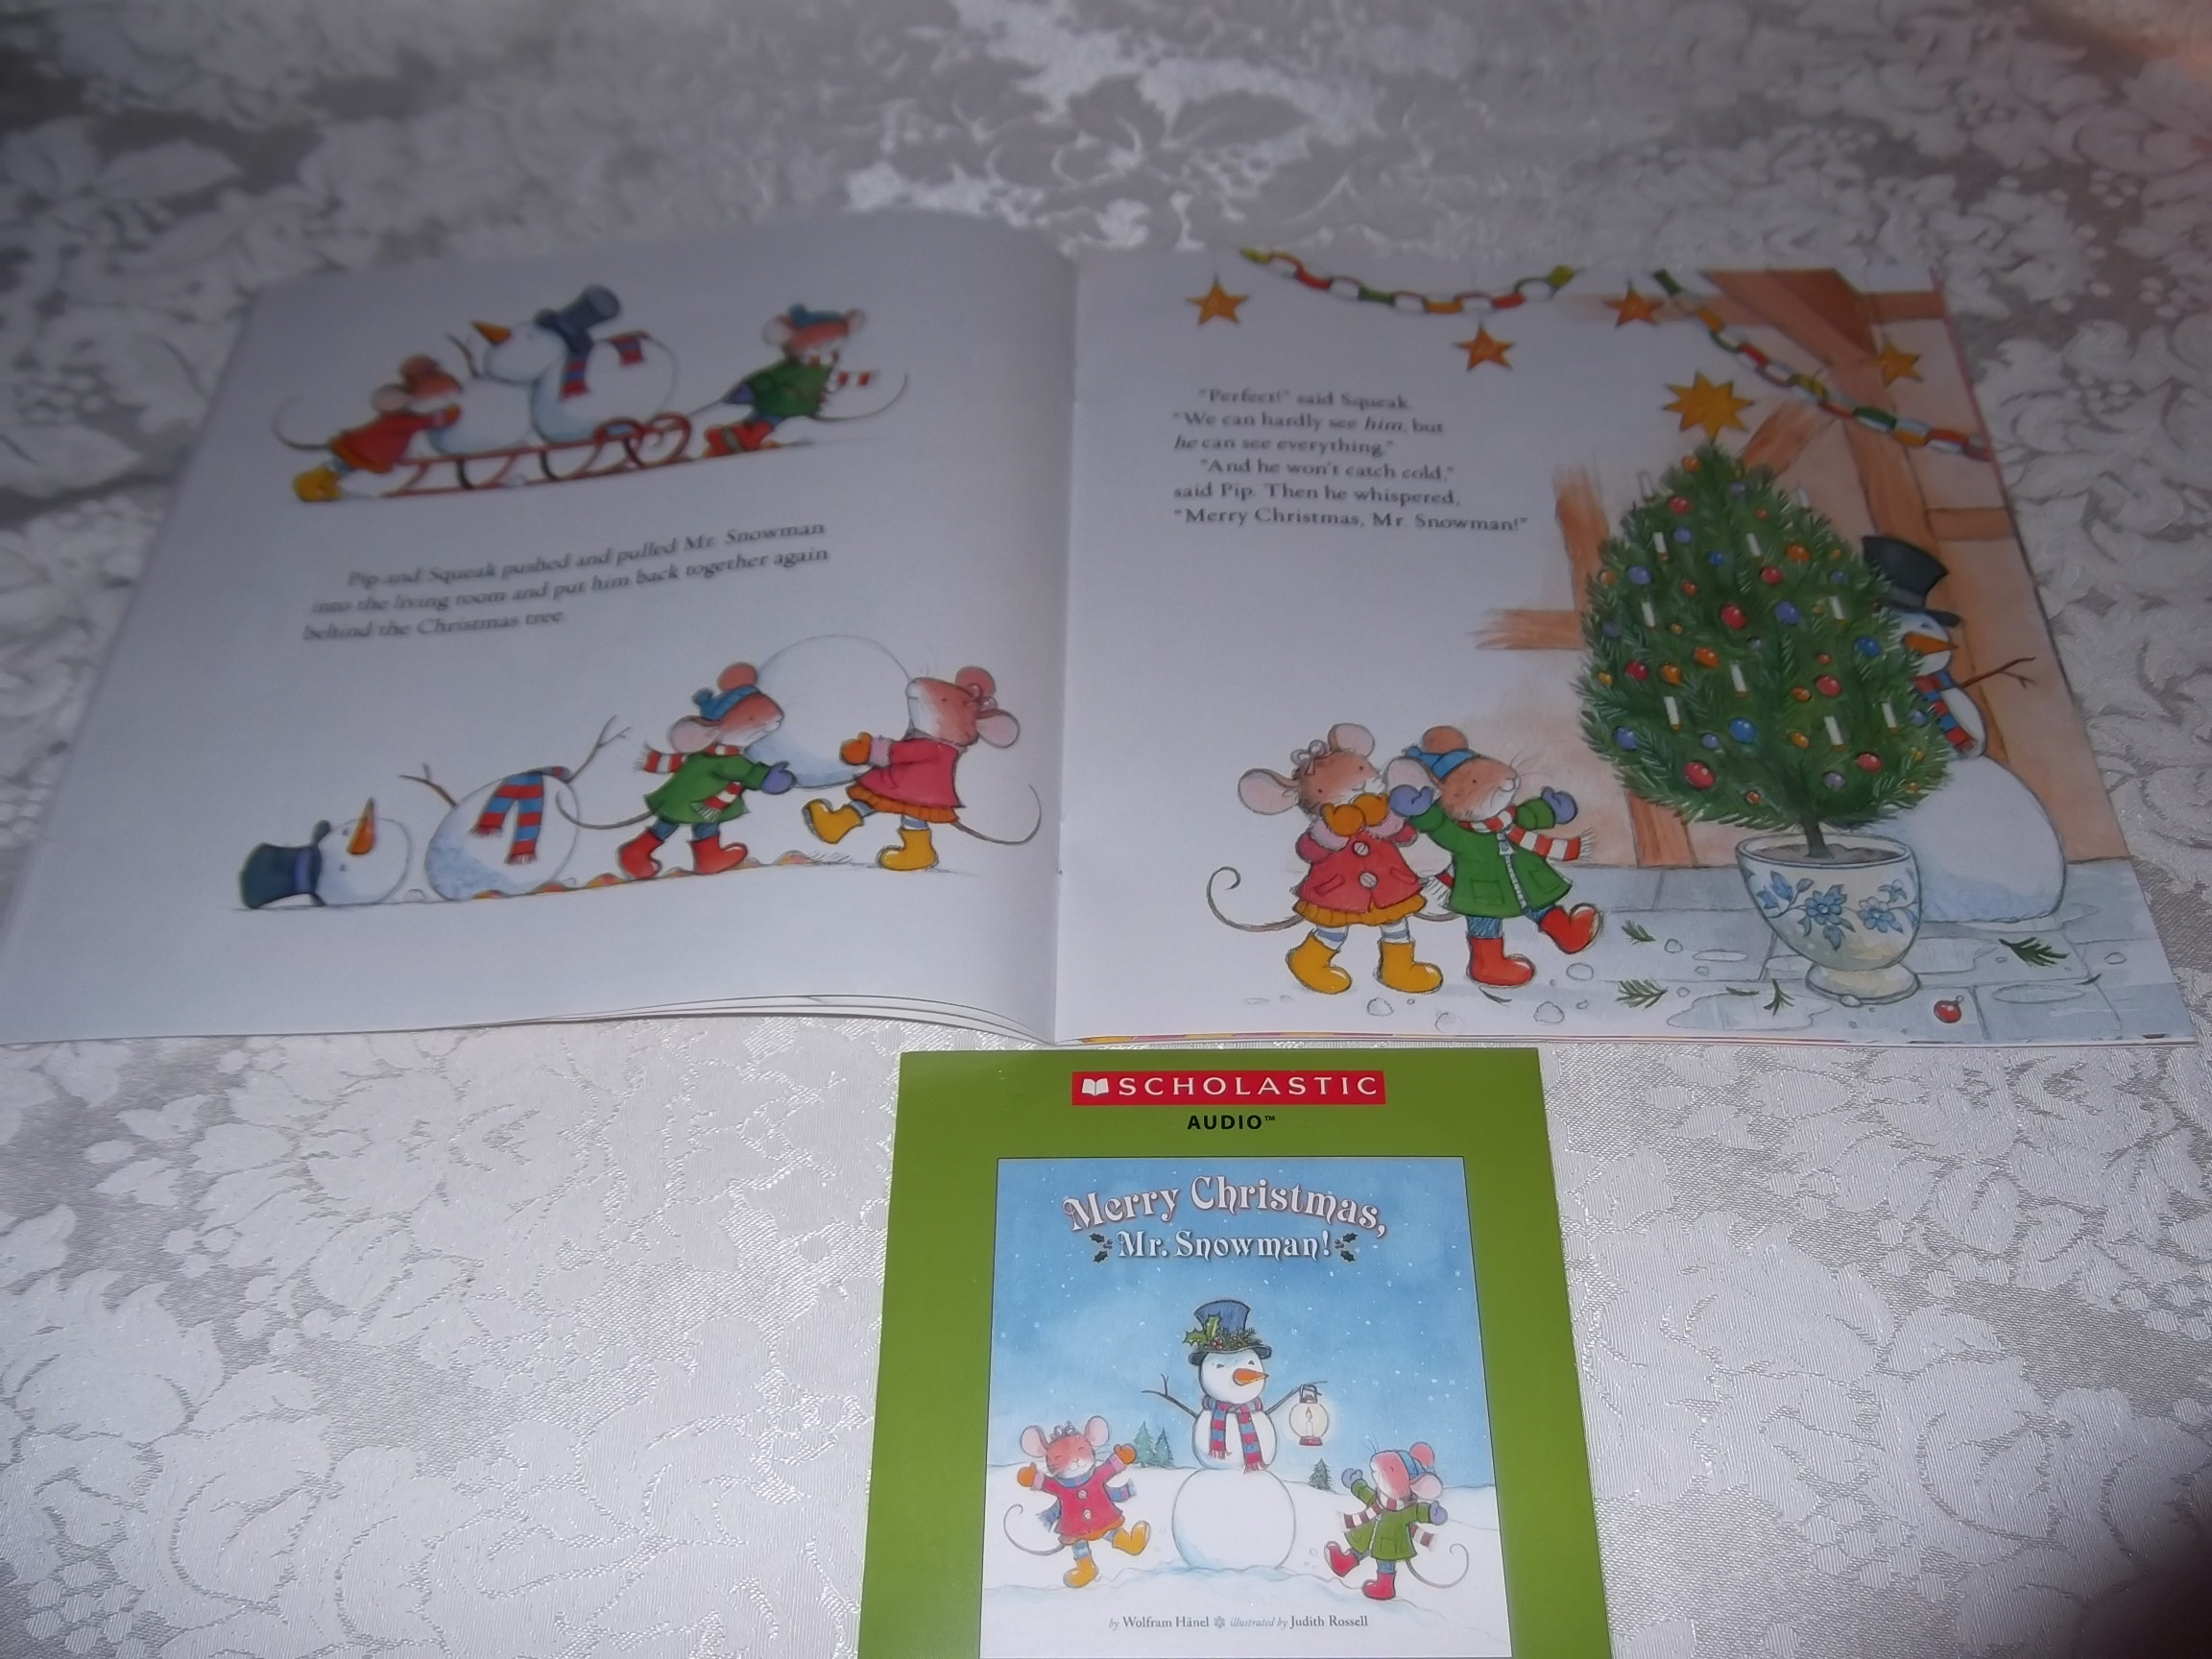 Image 4 of Merry Christmas, Mr. Snowman! Wolfram Hanel Audio CD and SC Brand New